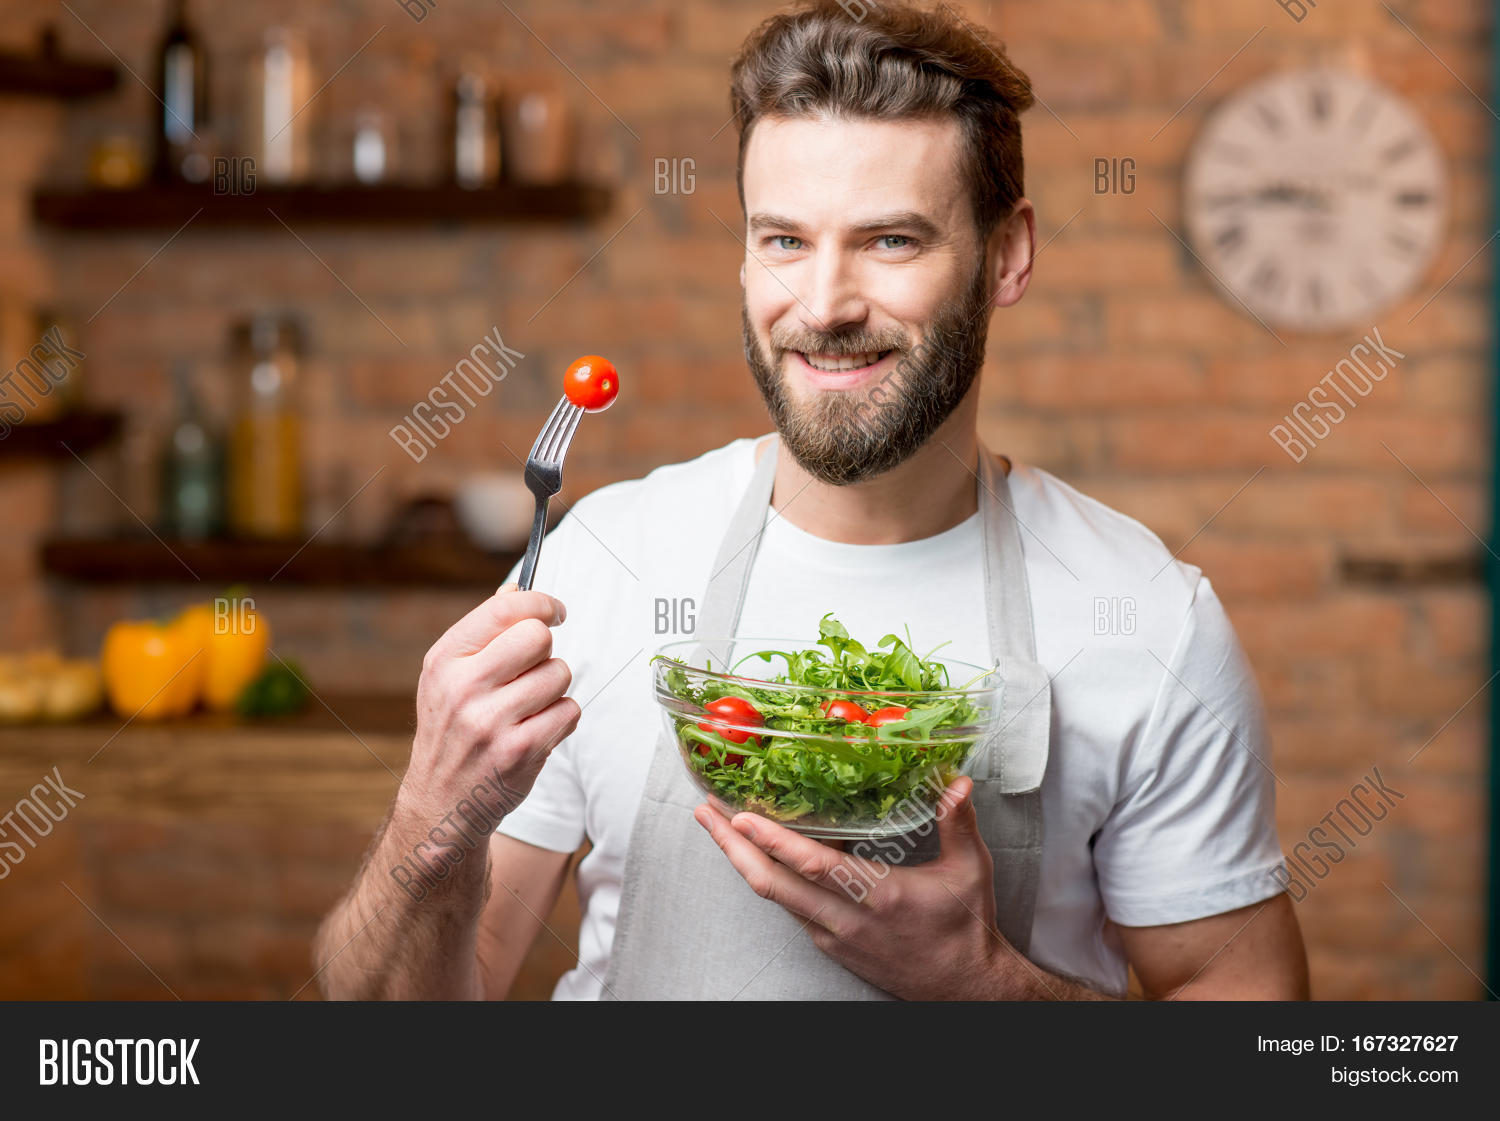 White apron salads